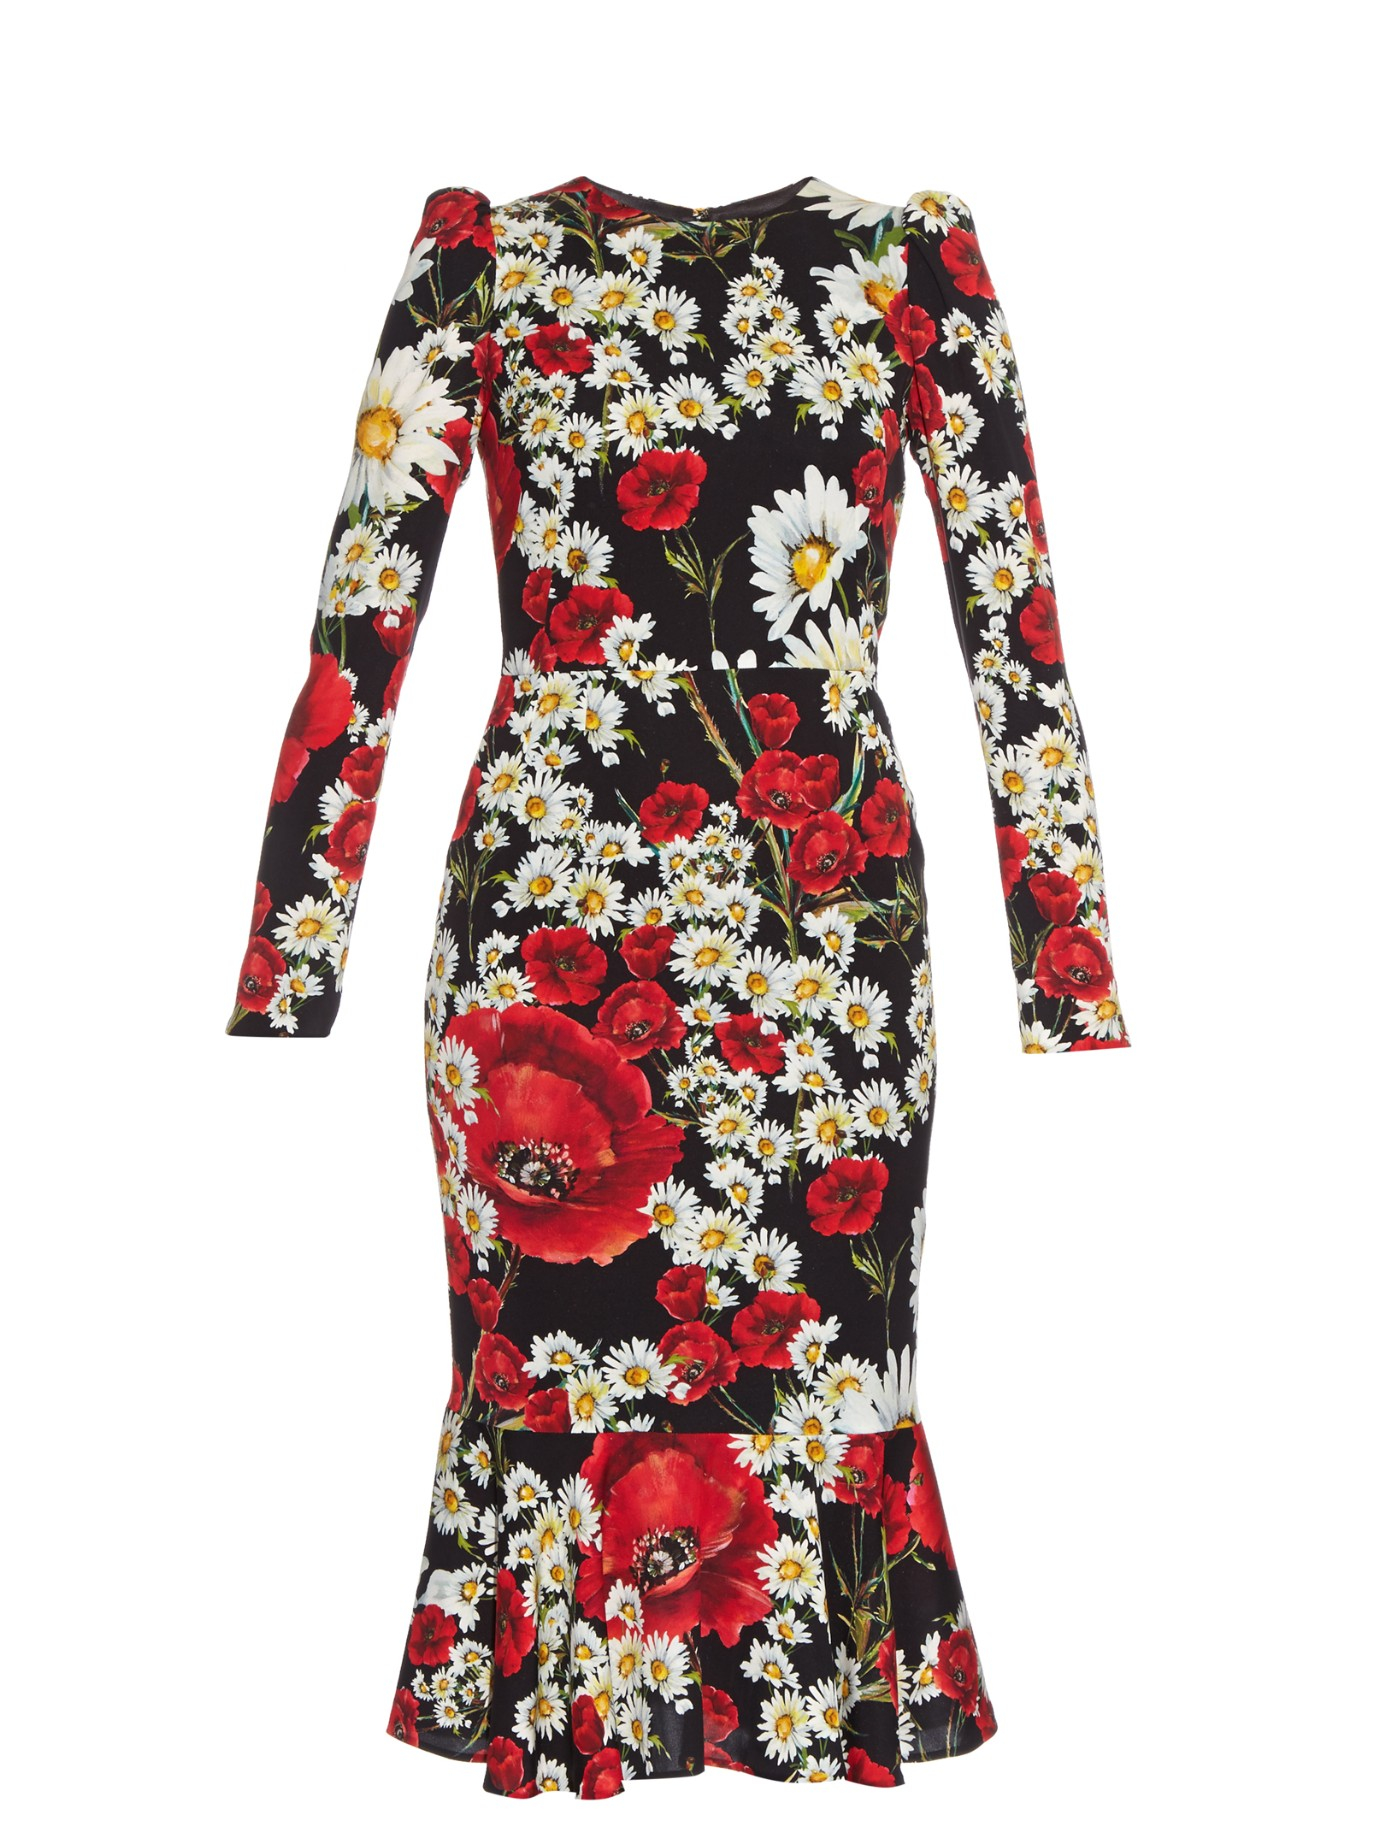 4abcc5b1 Dolce & Gabbana Poppy And Daisy-print Dress in Red - Lyst